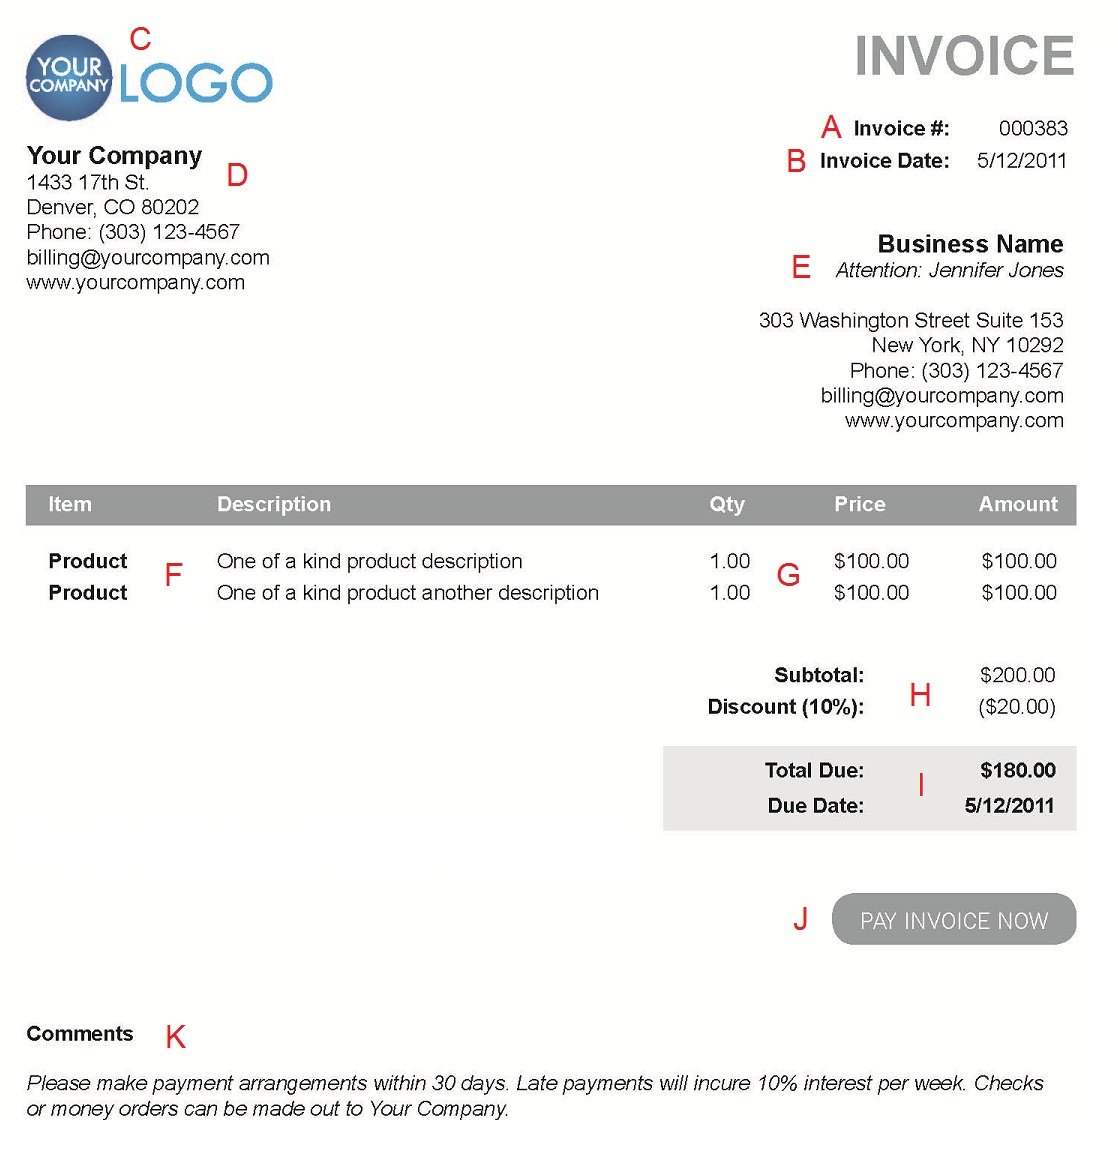 Coolmathgamesus  Picturesque The  Different Sections Of An Electronic Payment Invoice With Heavenly A  With Comely Mail Invoice Also Westpac Invoice Finance In Addition Difference Between Proforma Invoice And Invoice And Express Invoice Free Download As Well As Commercial Invoice Proforma Invoice Additionally Example Of Invoice For Services Rendered From Paysimplecom With Coolmathgamesus  Heavenly The  Different Sections Of An Electronic Payment Invoice With Comely A  And Picturesque Mail Invoice Also Westpac Invoice Finance In Addition Difference Between Proforma Invoice And Invoice From Paysimplecom